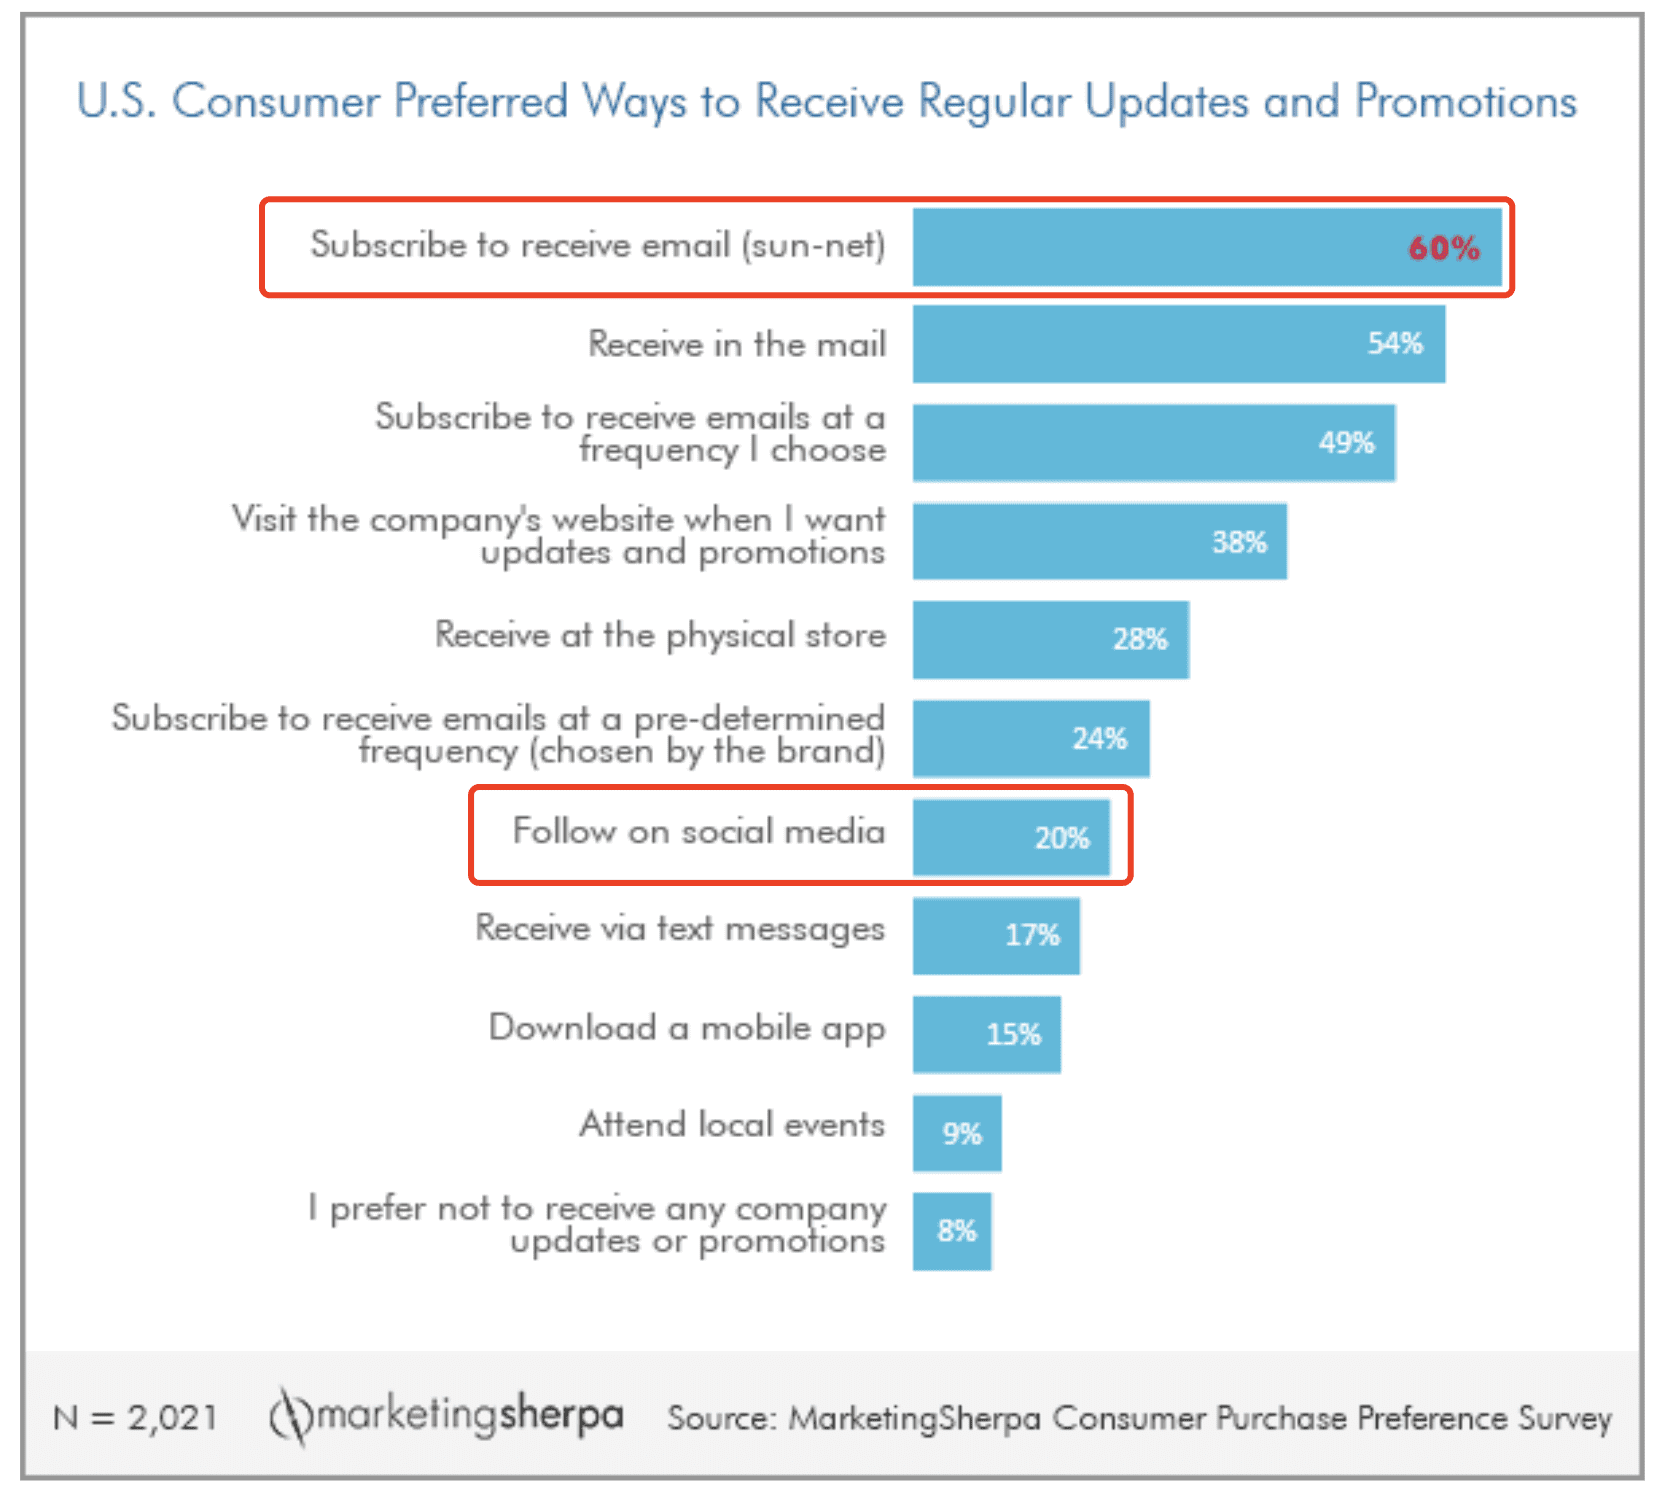 Consumer Preferred Ways to Receive Promotions